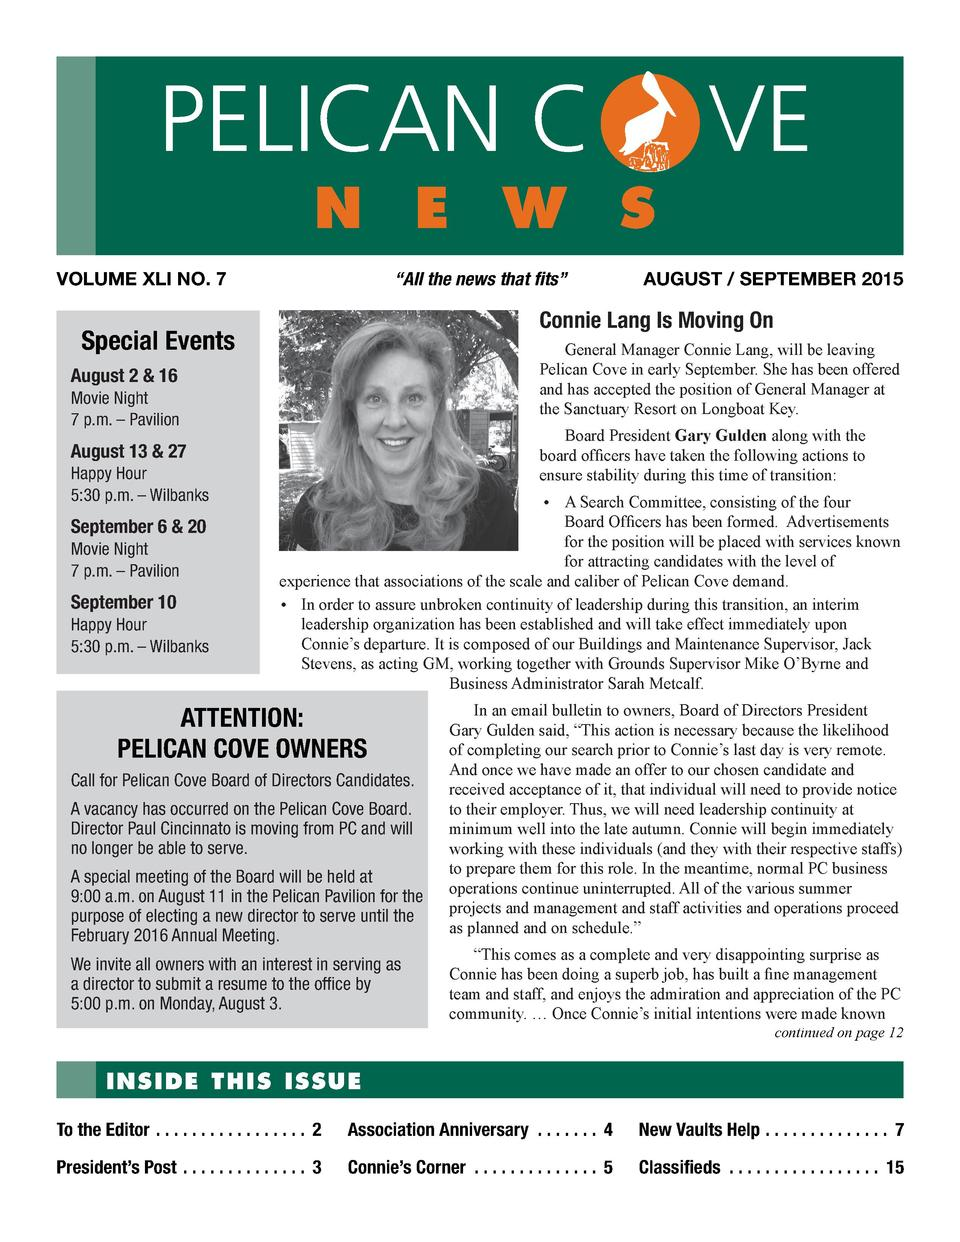 PELICAN C  n e w s  VOLUME XLI NO. 7     All the news that fits       General Manager Connie Lang, will be leaving Pelican...